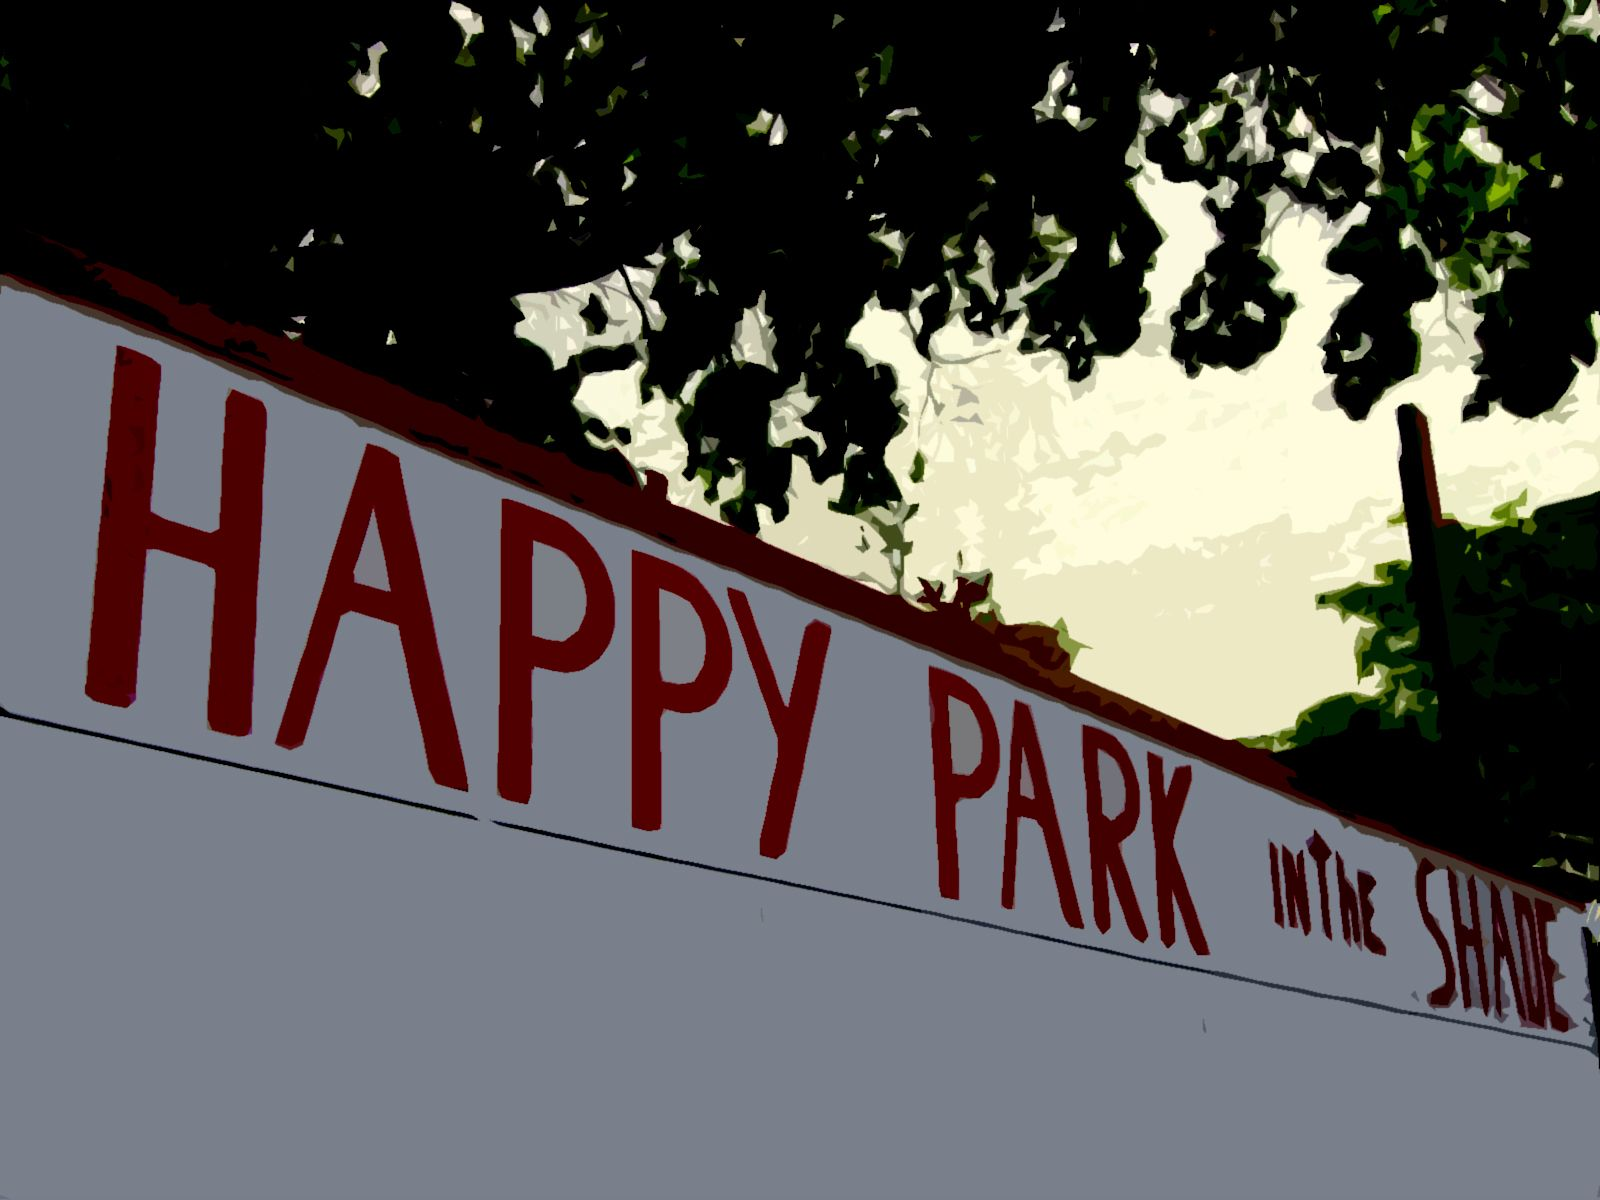 Happy Park In The Shade